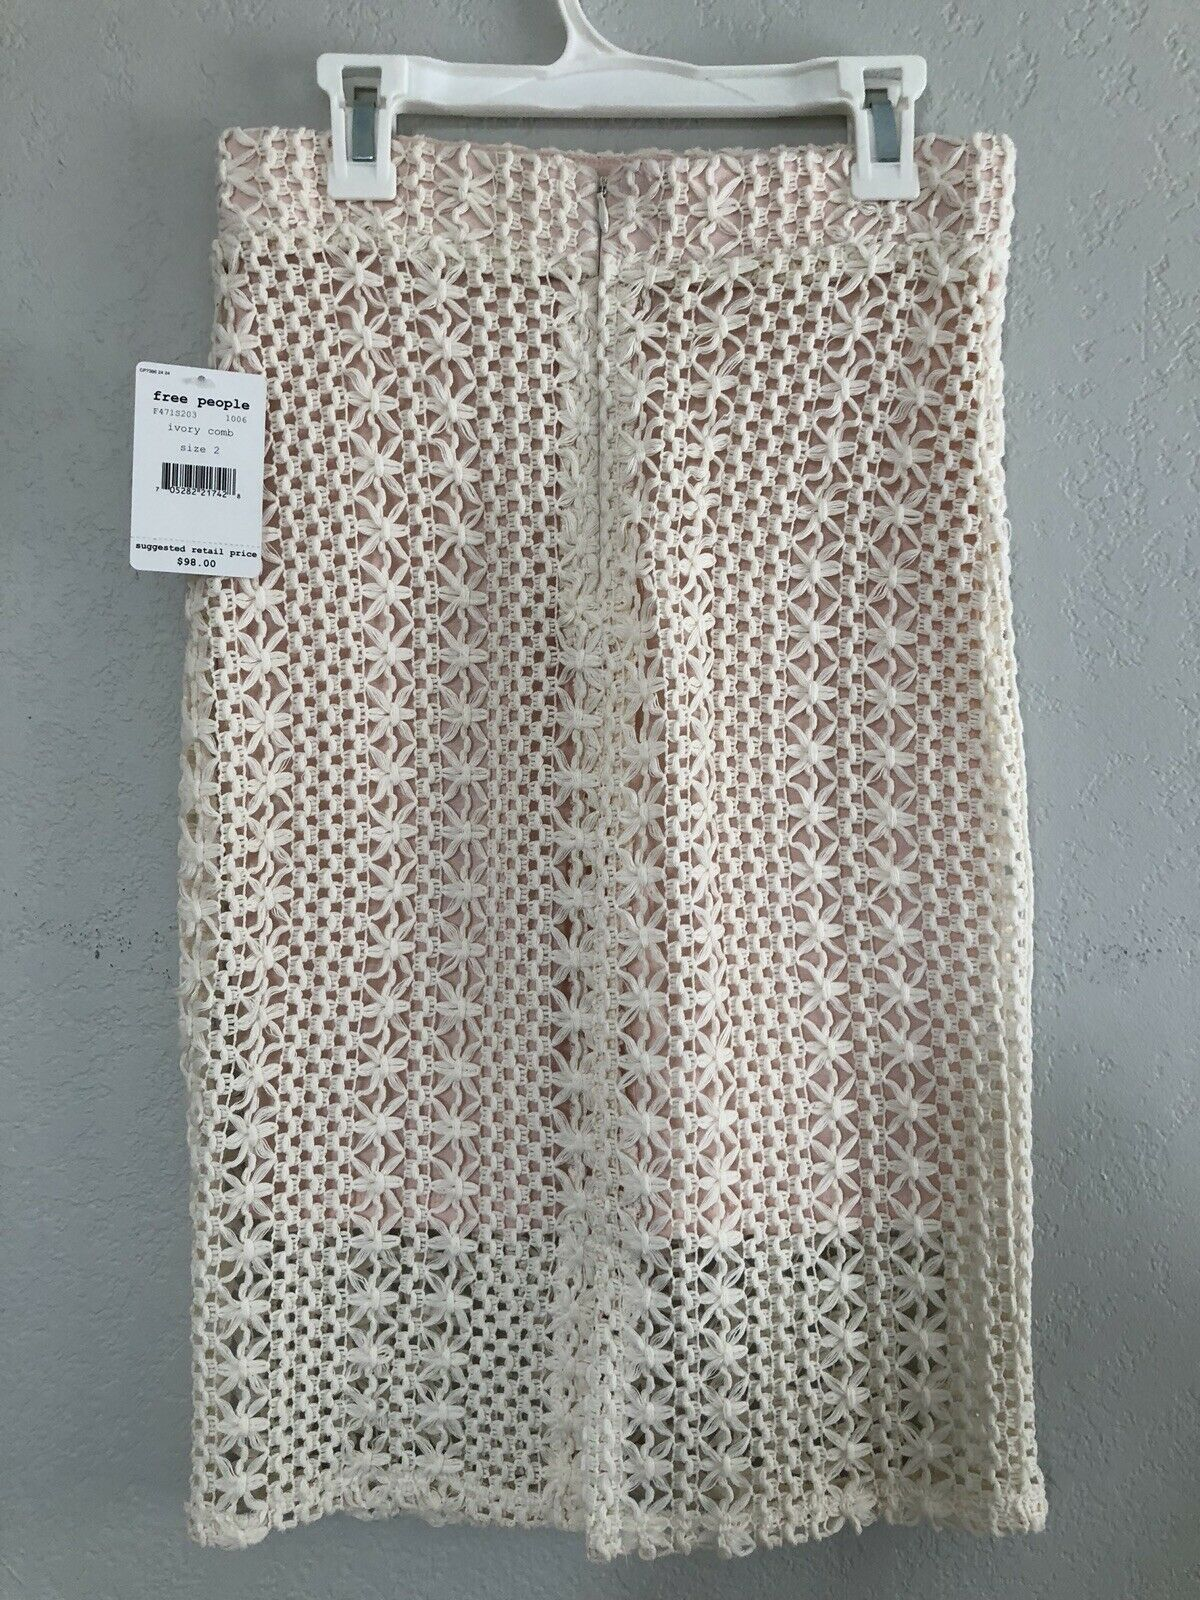 NWT Free People Ivory Comb Skirt Size 2